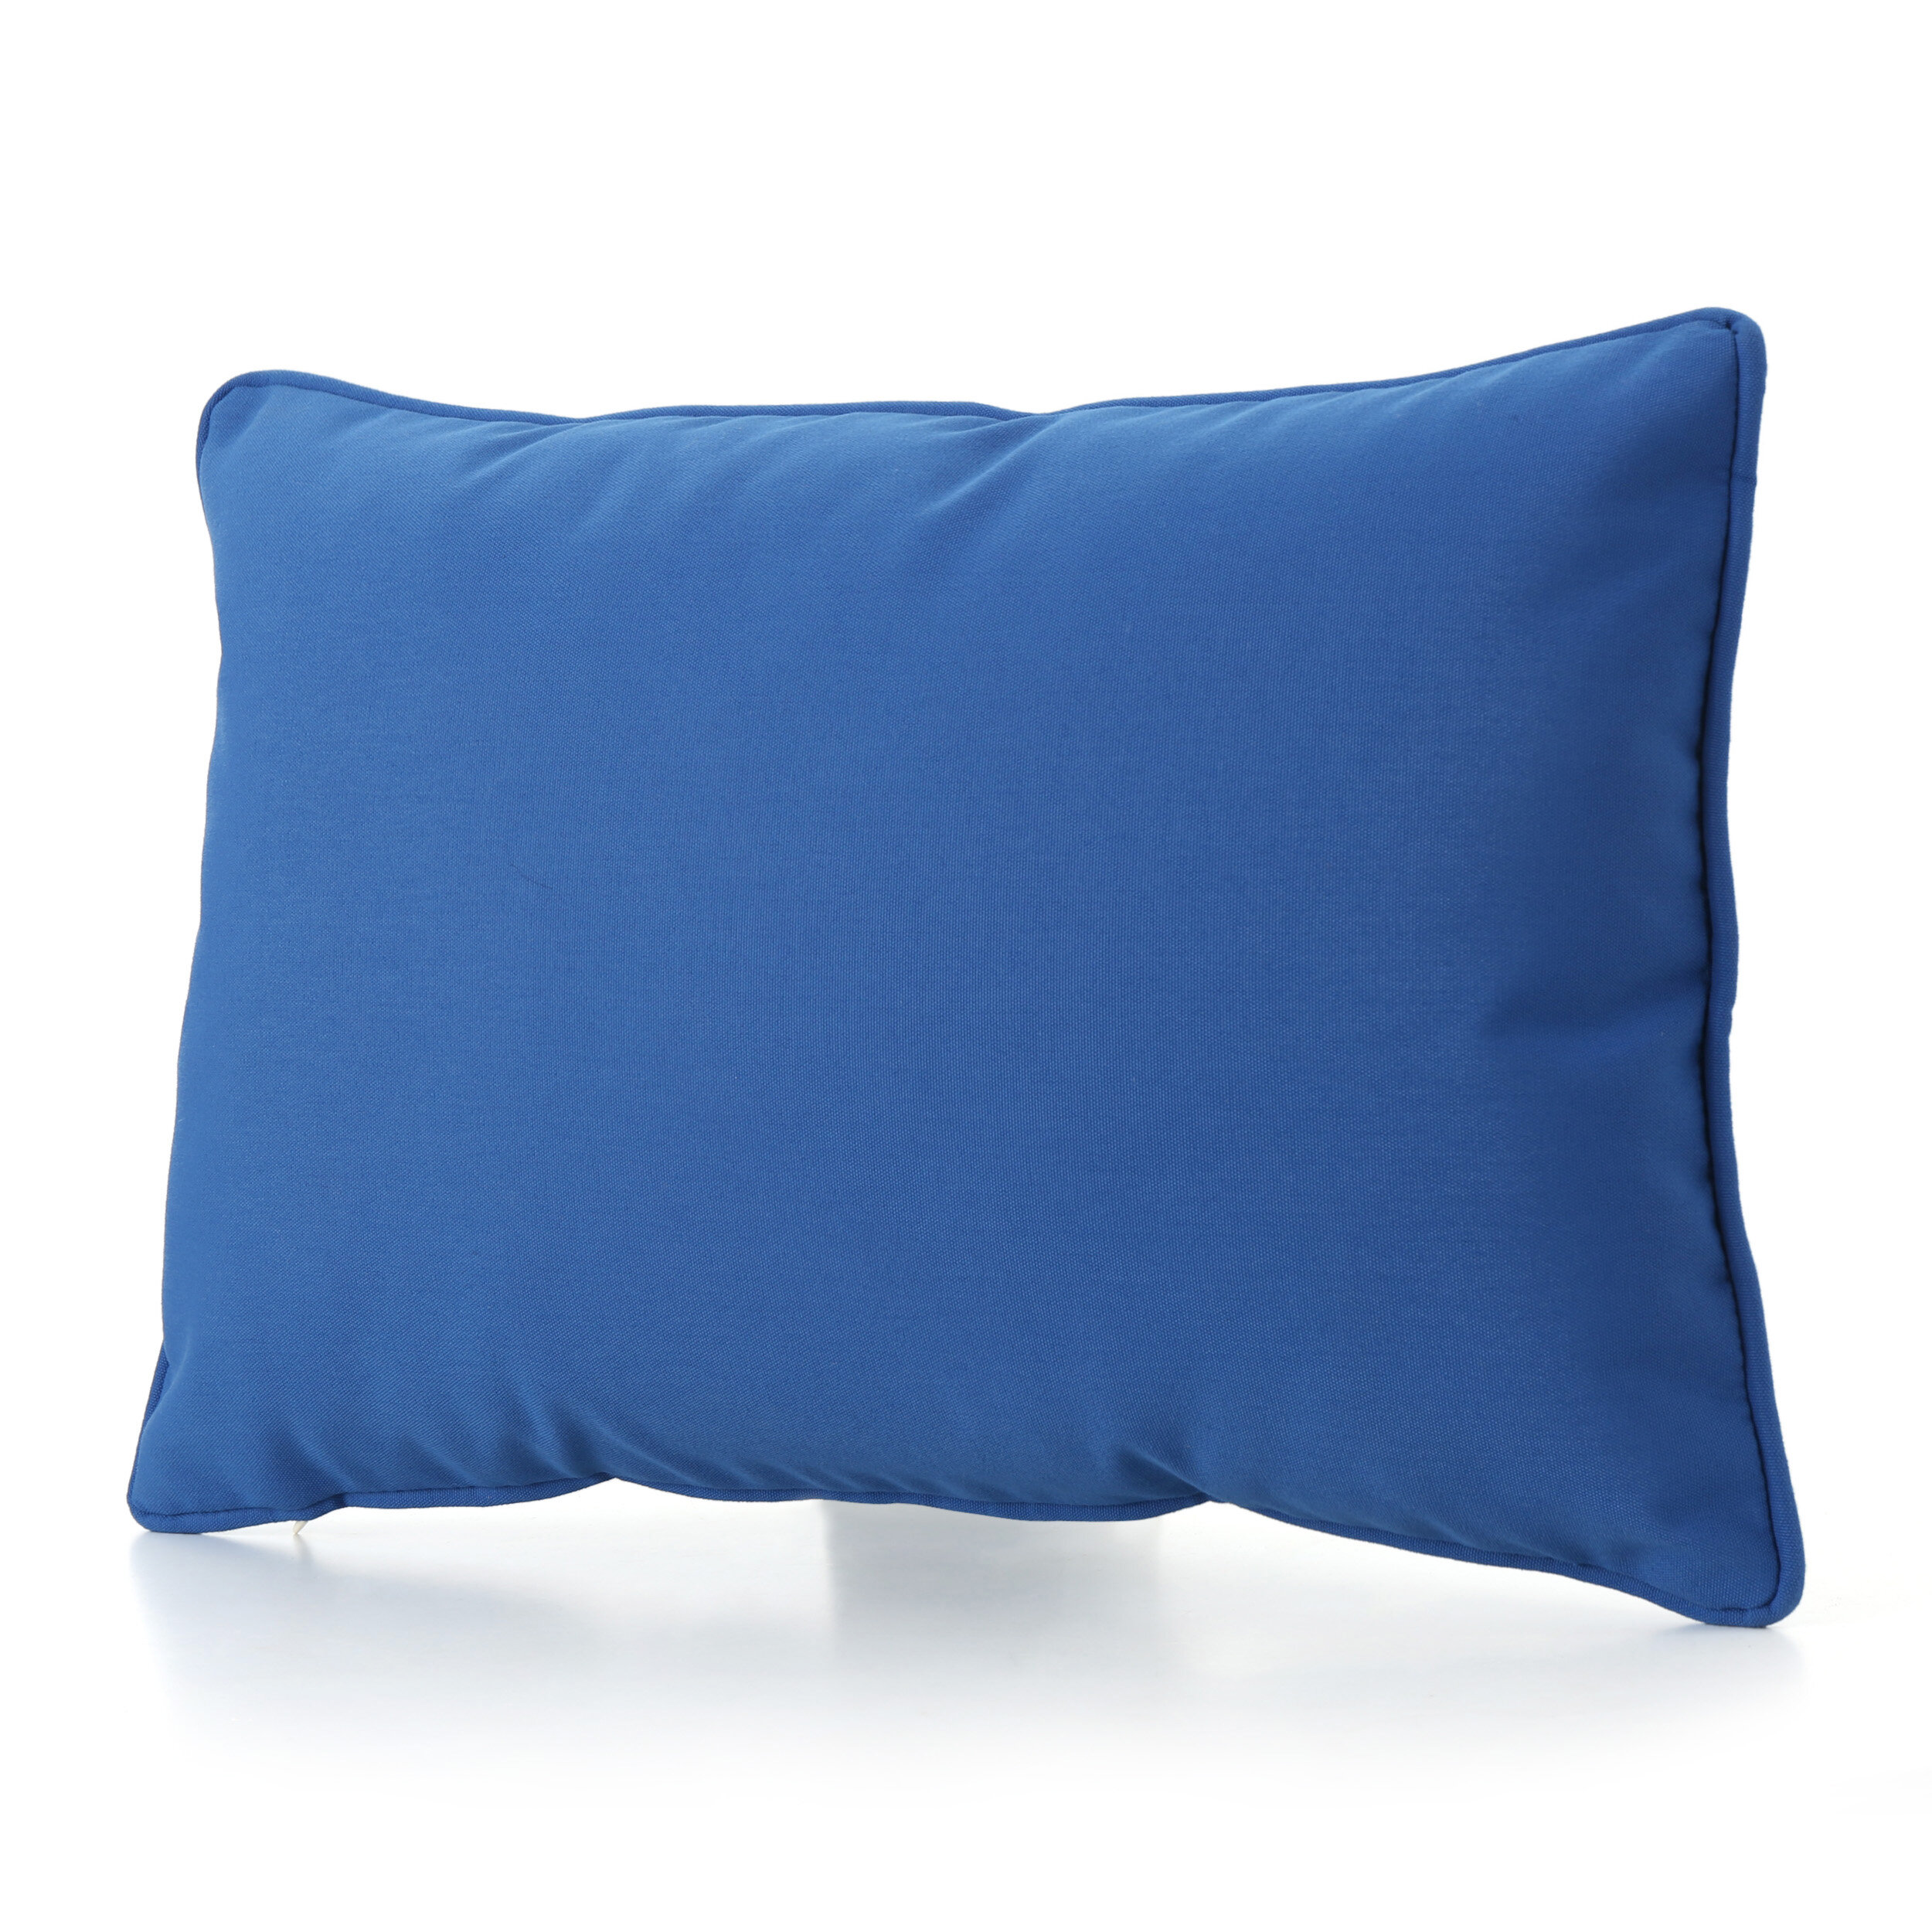 The Pillow Collection Oisin Solid Bedding Sham Dark Blue Standard//20 x 26,